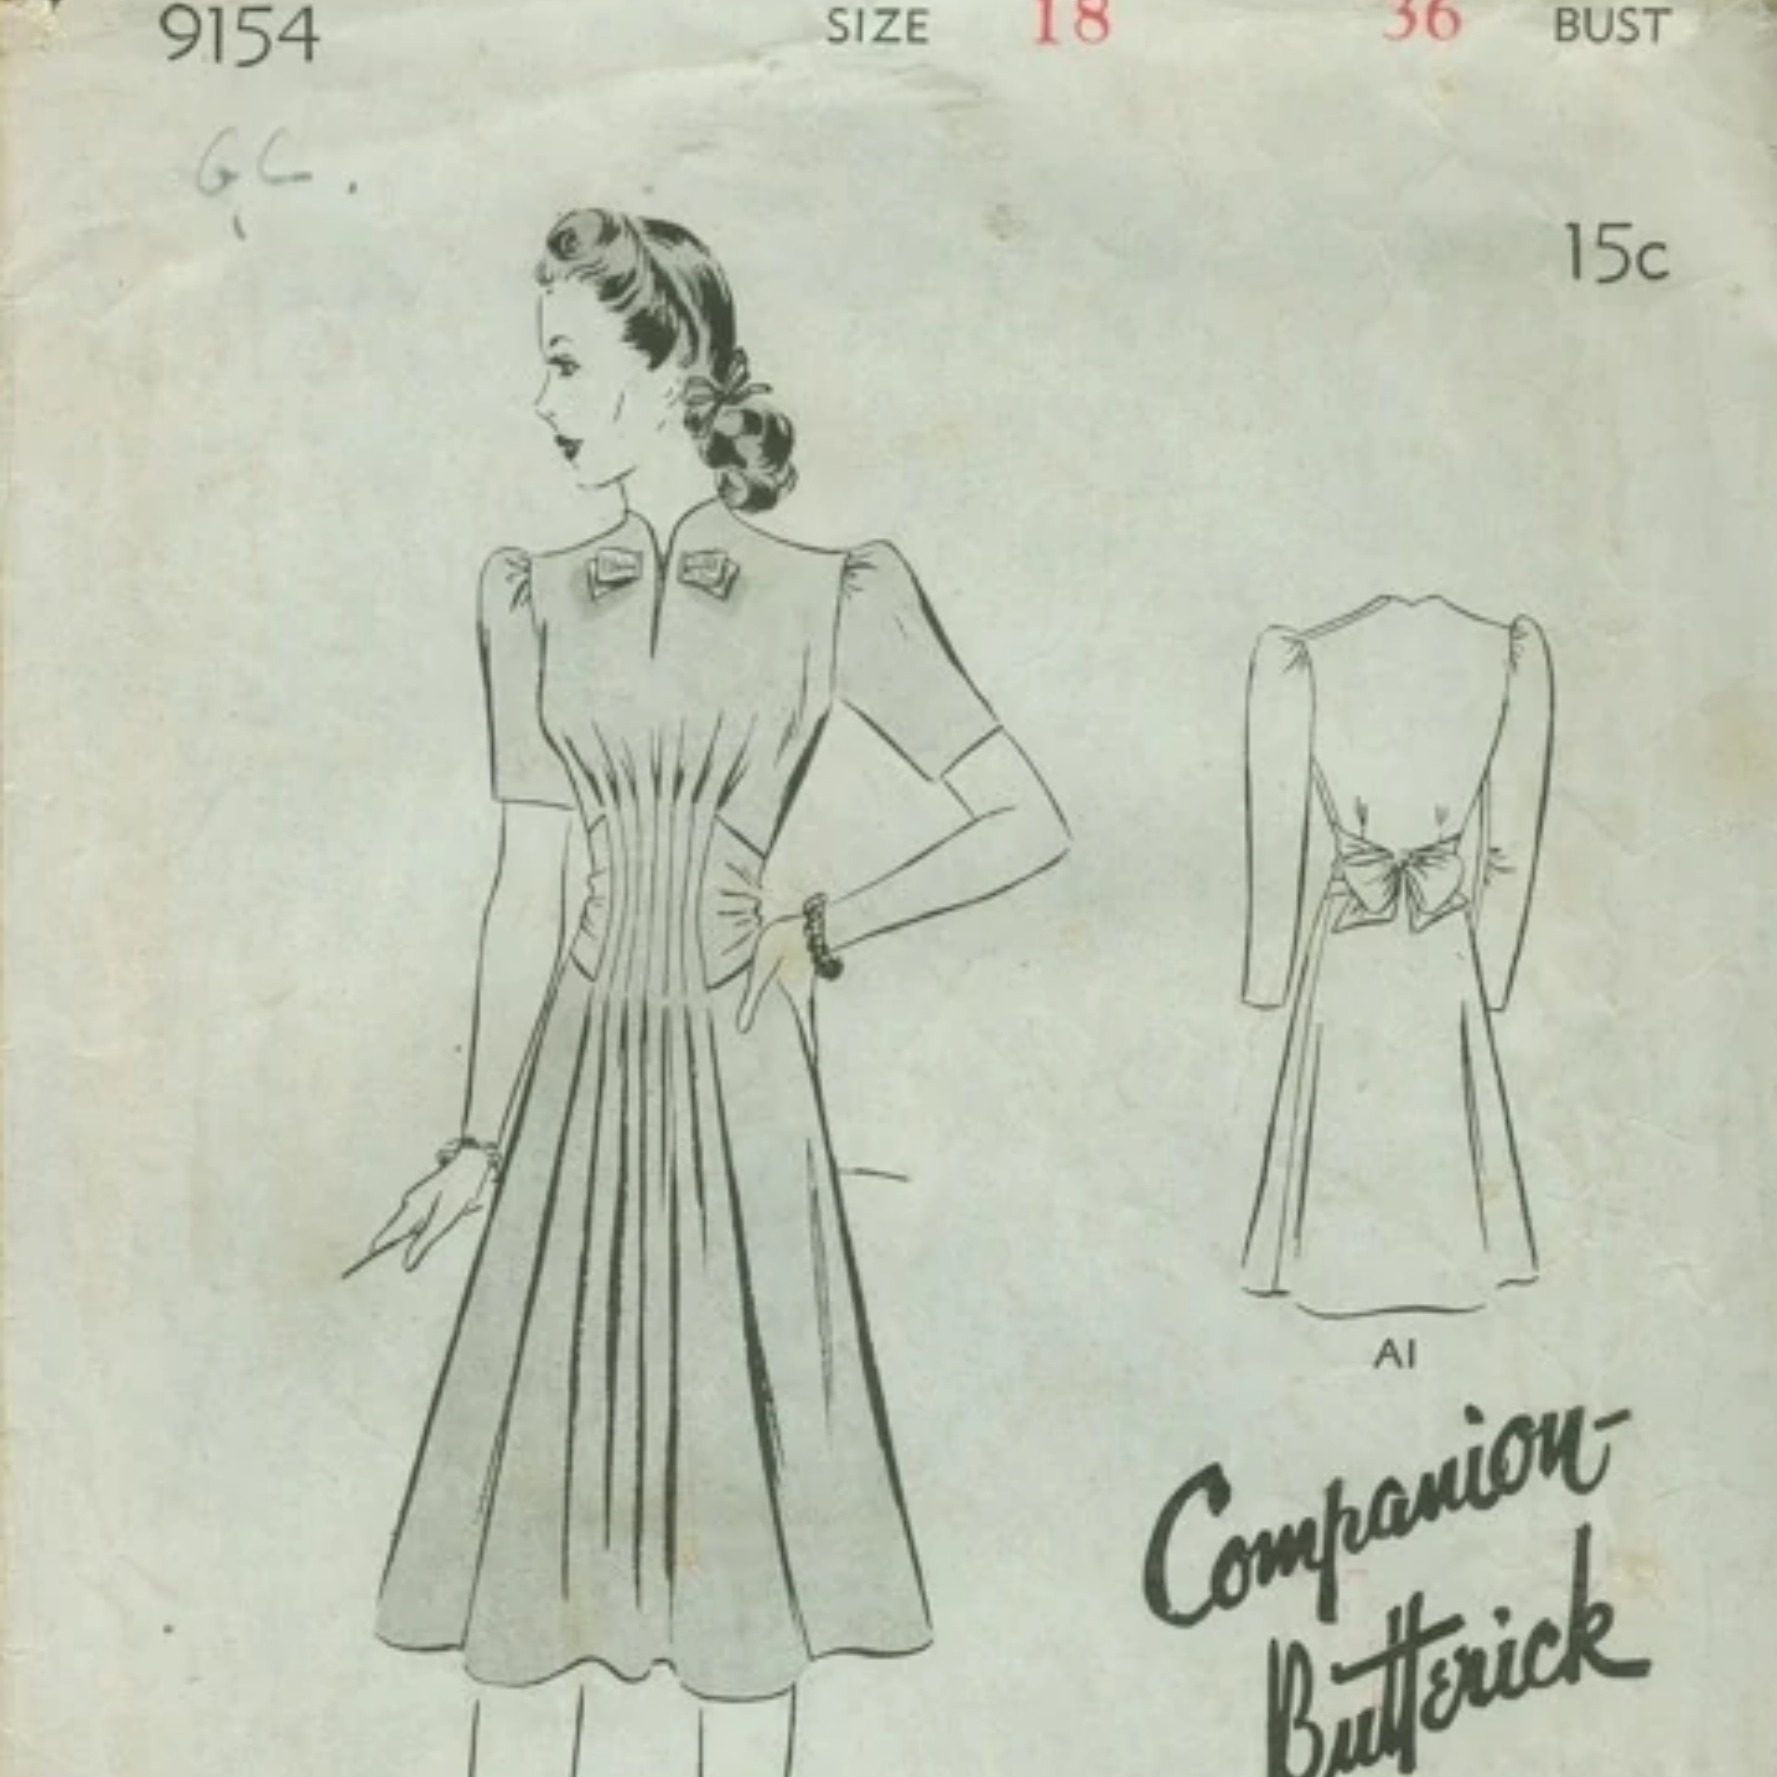 83 500 Vintage Sewing Patterns Are Now Available For You To See Martha Stewart